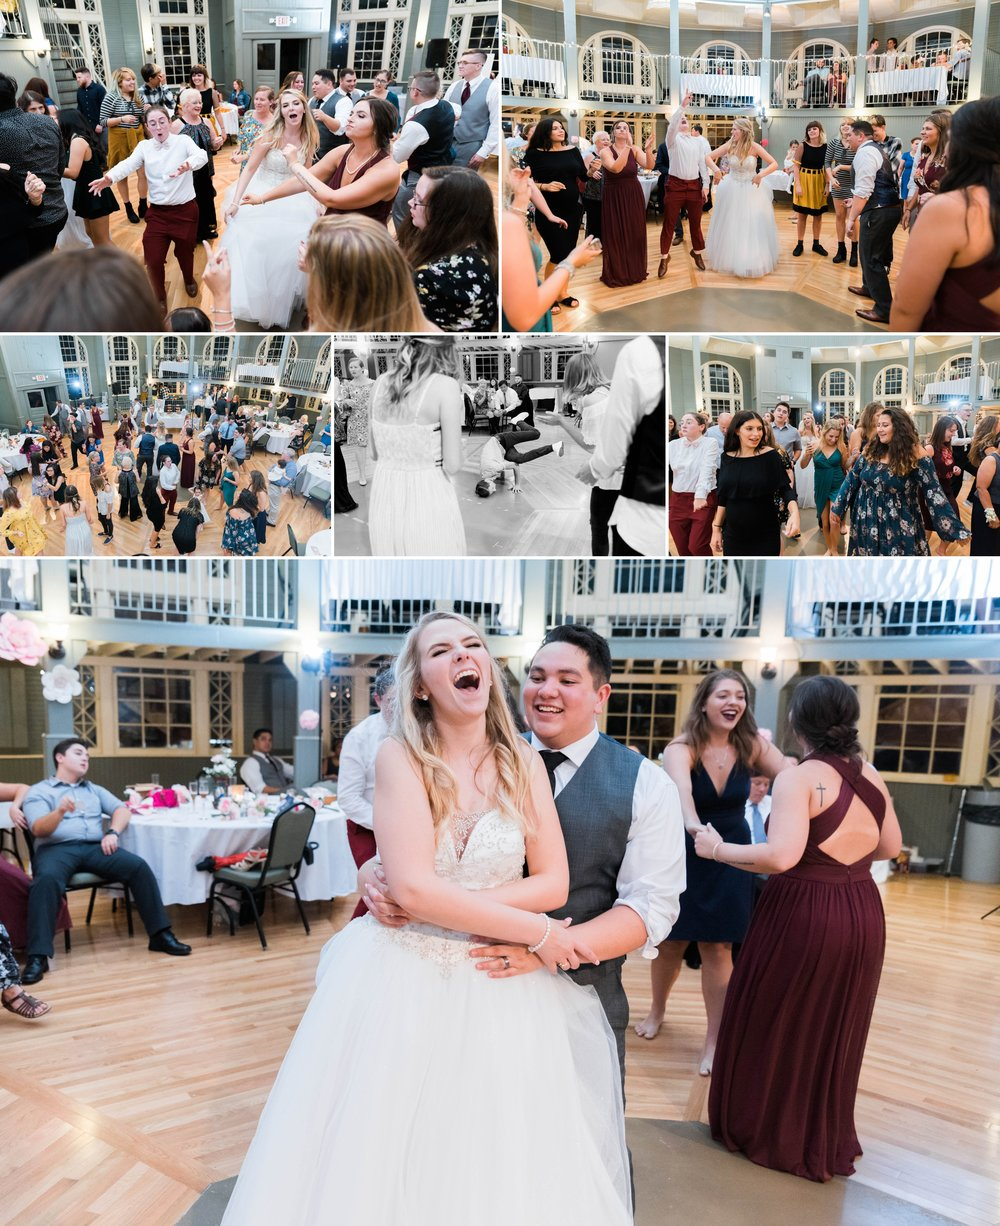 LynchburgVirginia_Virginiaweddingphotographer_michaelkim 22.jpg